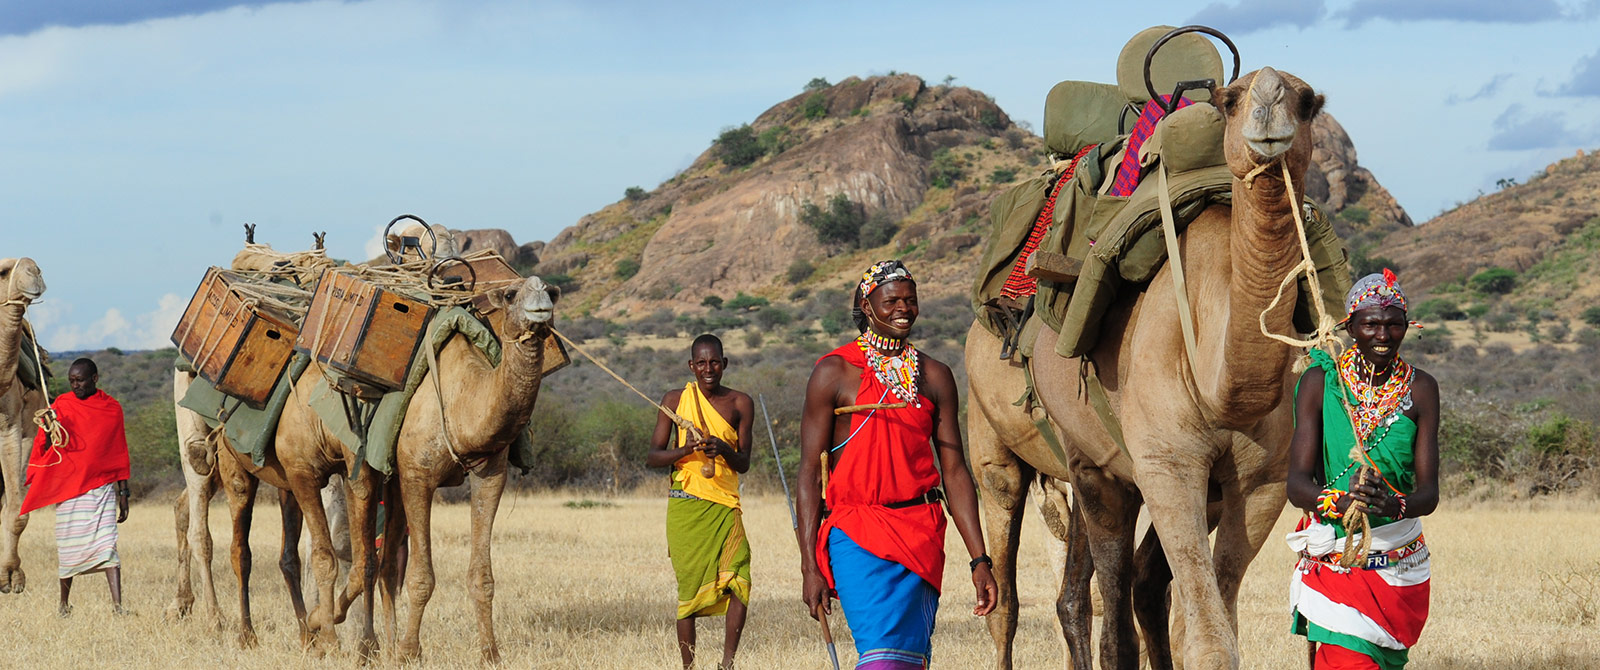 Karisia Walking Safaris with Camels - Kenya Walking Safari: A Walk in the Wild Travel Package